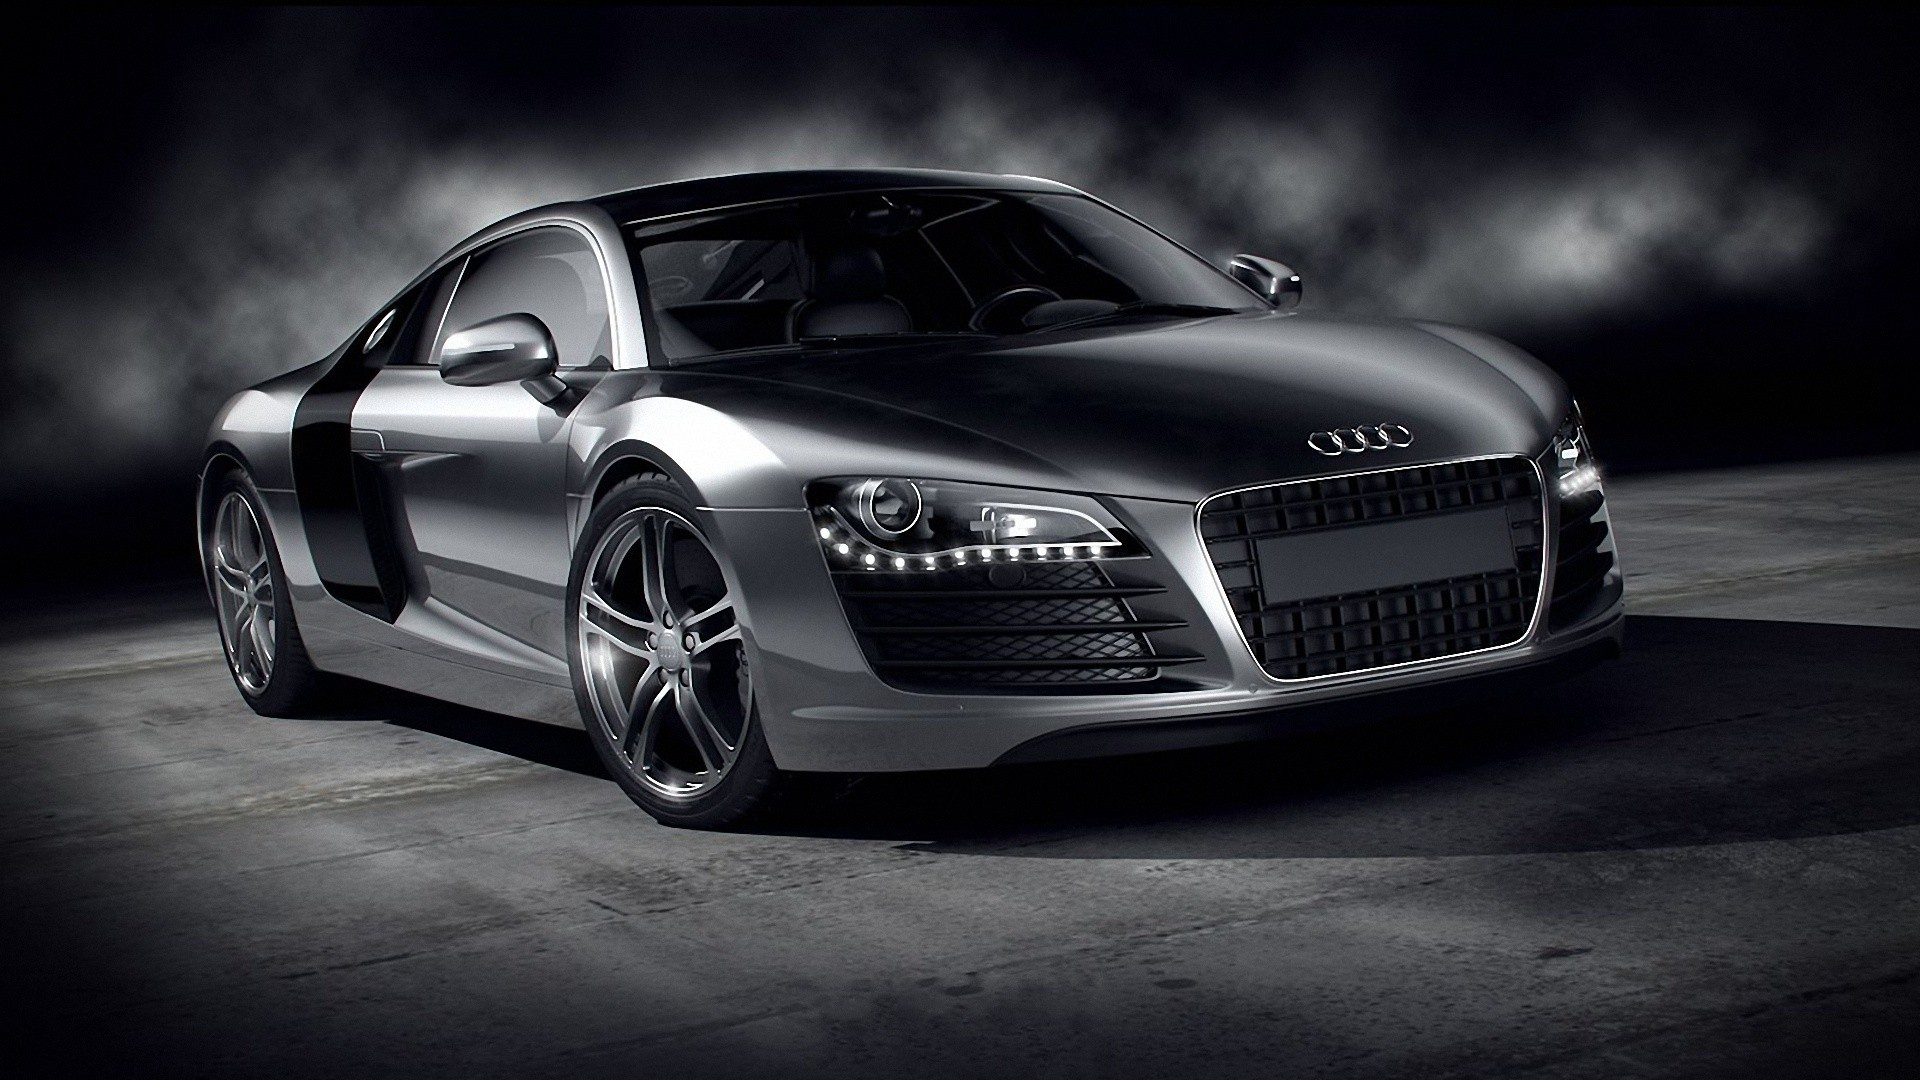 Audi Wallpaper 1920x1080 Wallpapersafari